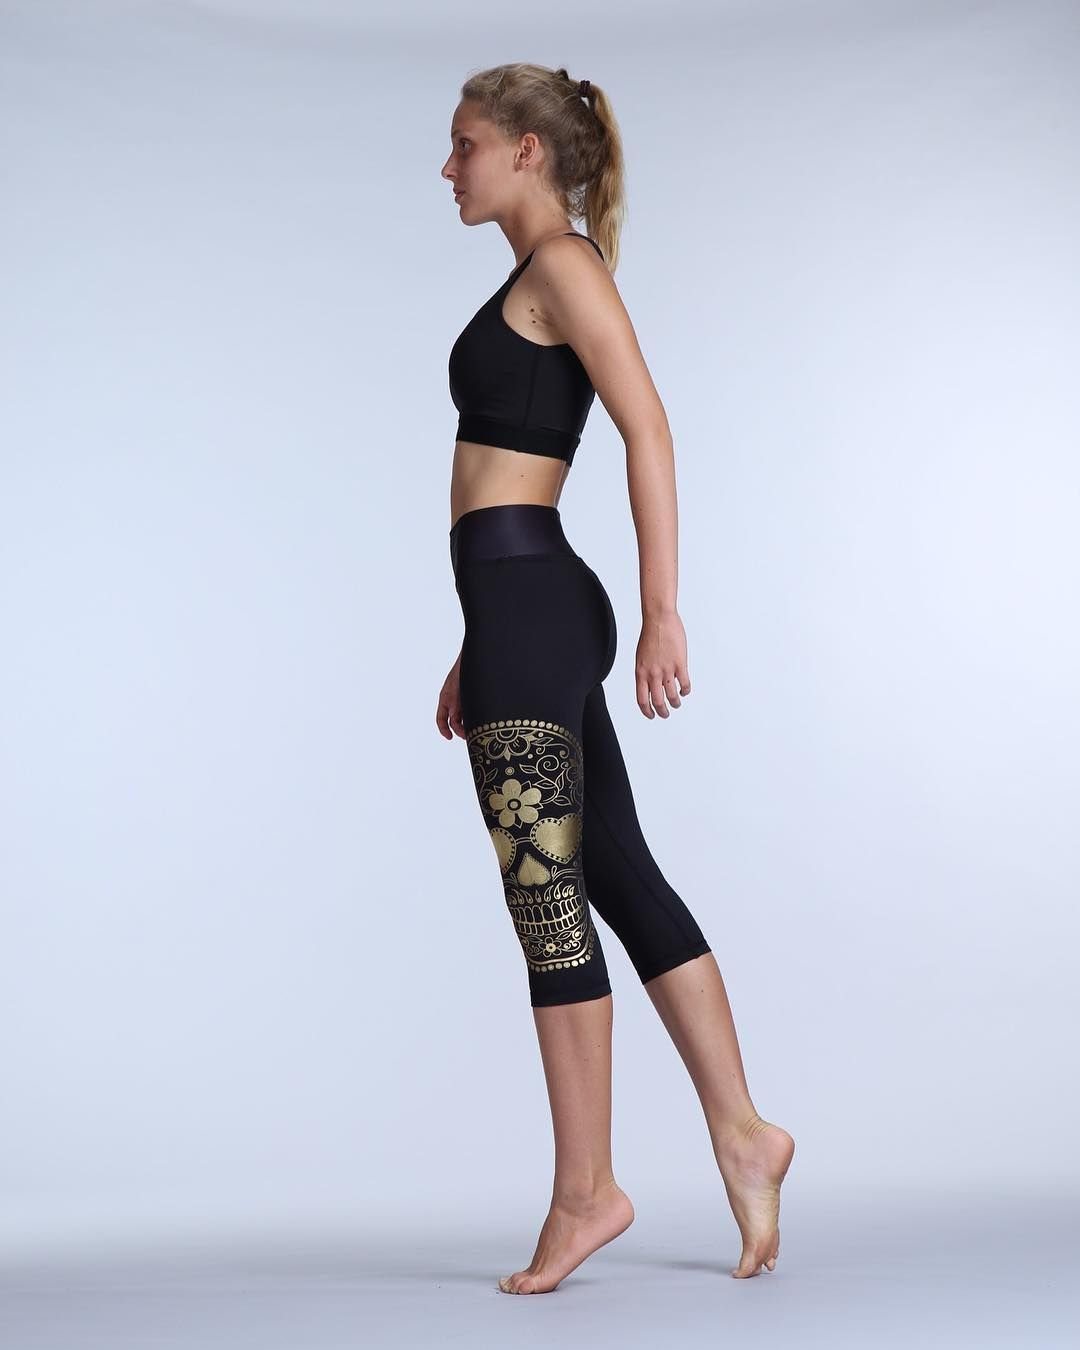 7b6ca3aa59d91e Badass in black! CATRINA LEGGINGS  amp  CROP TOP available online now.